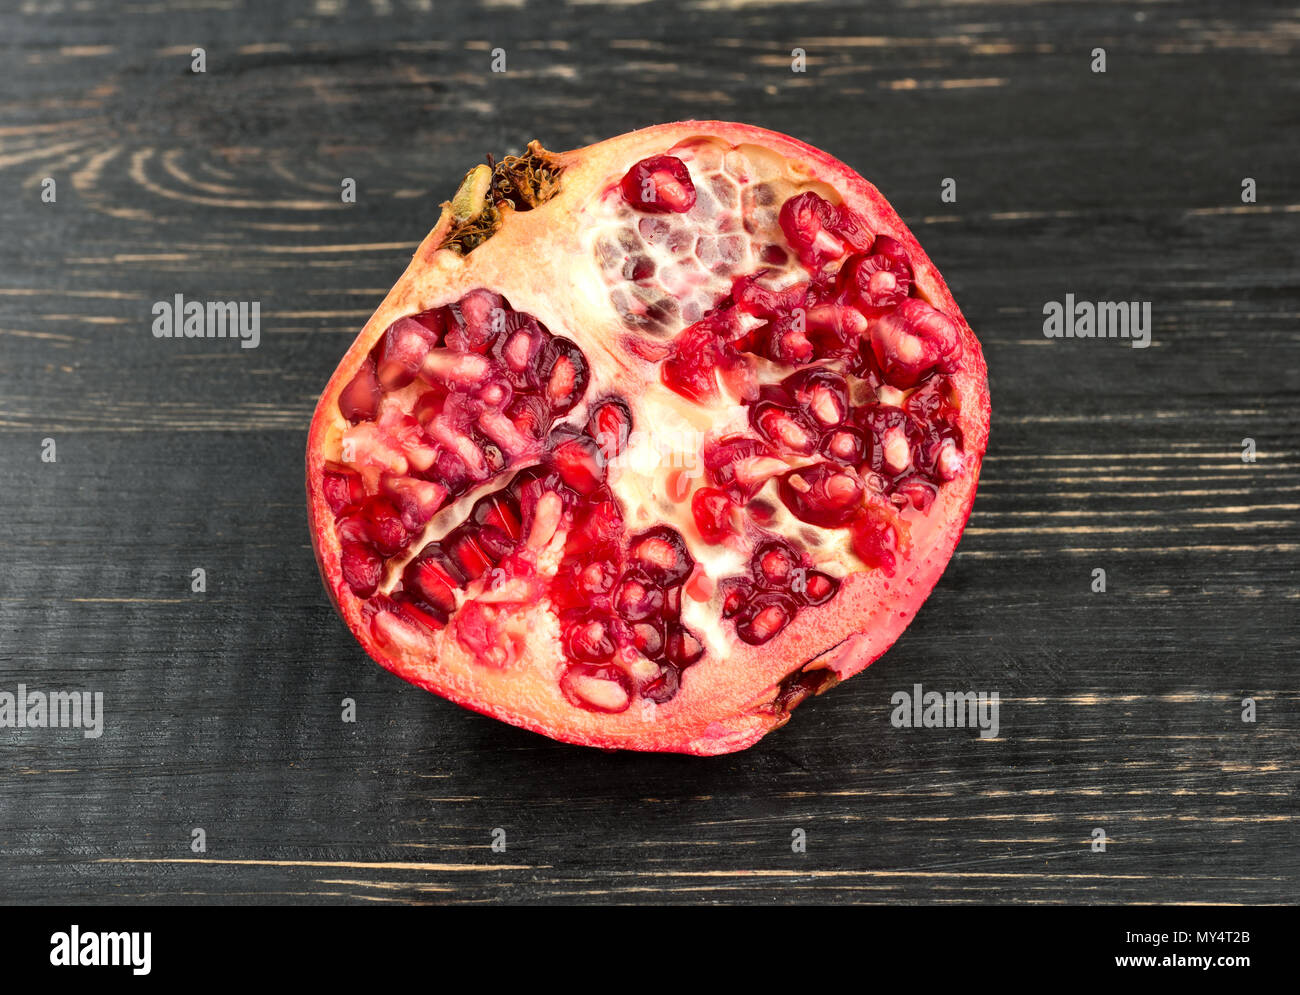 Juicy half of pomegranate on a dark table - Stock Image